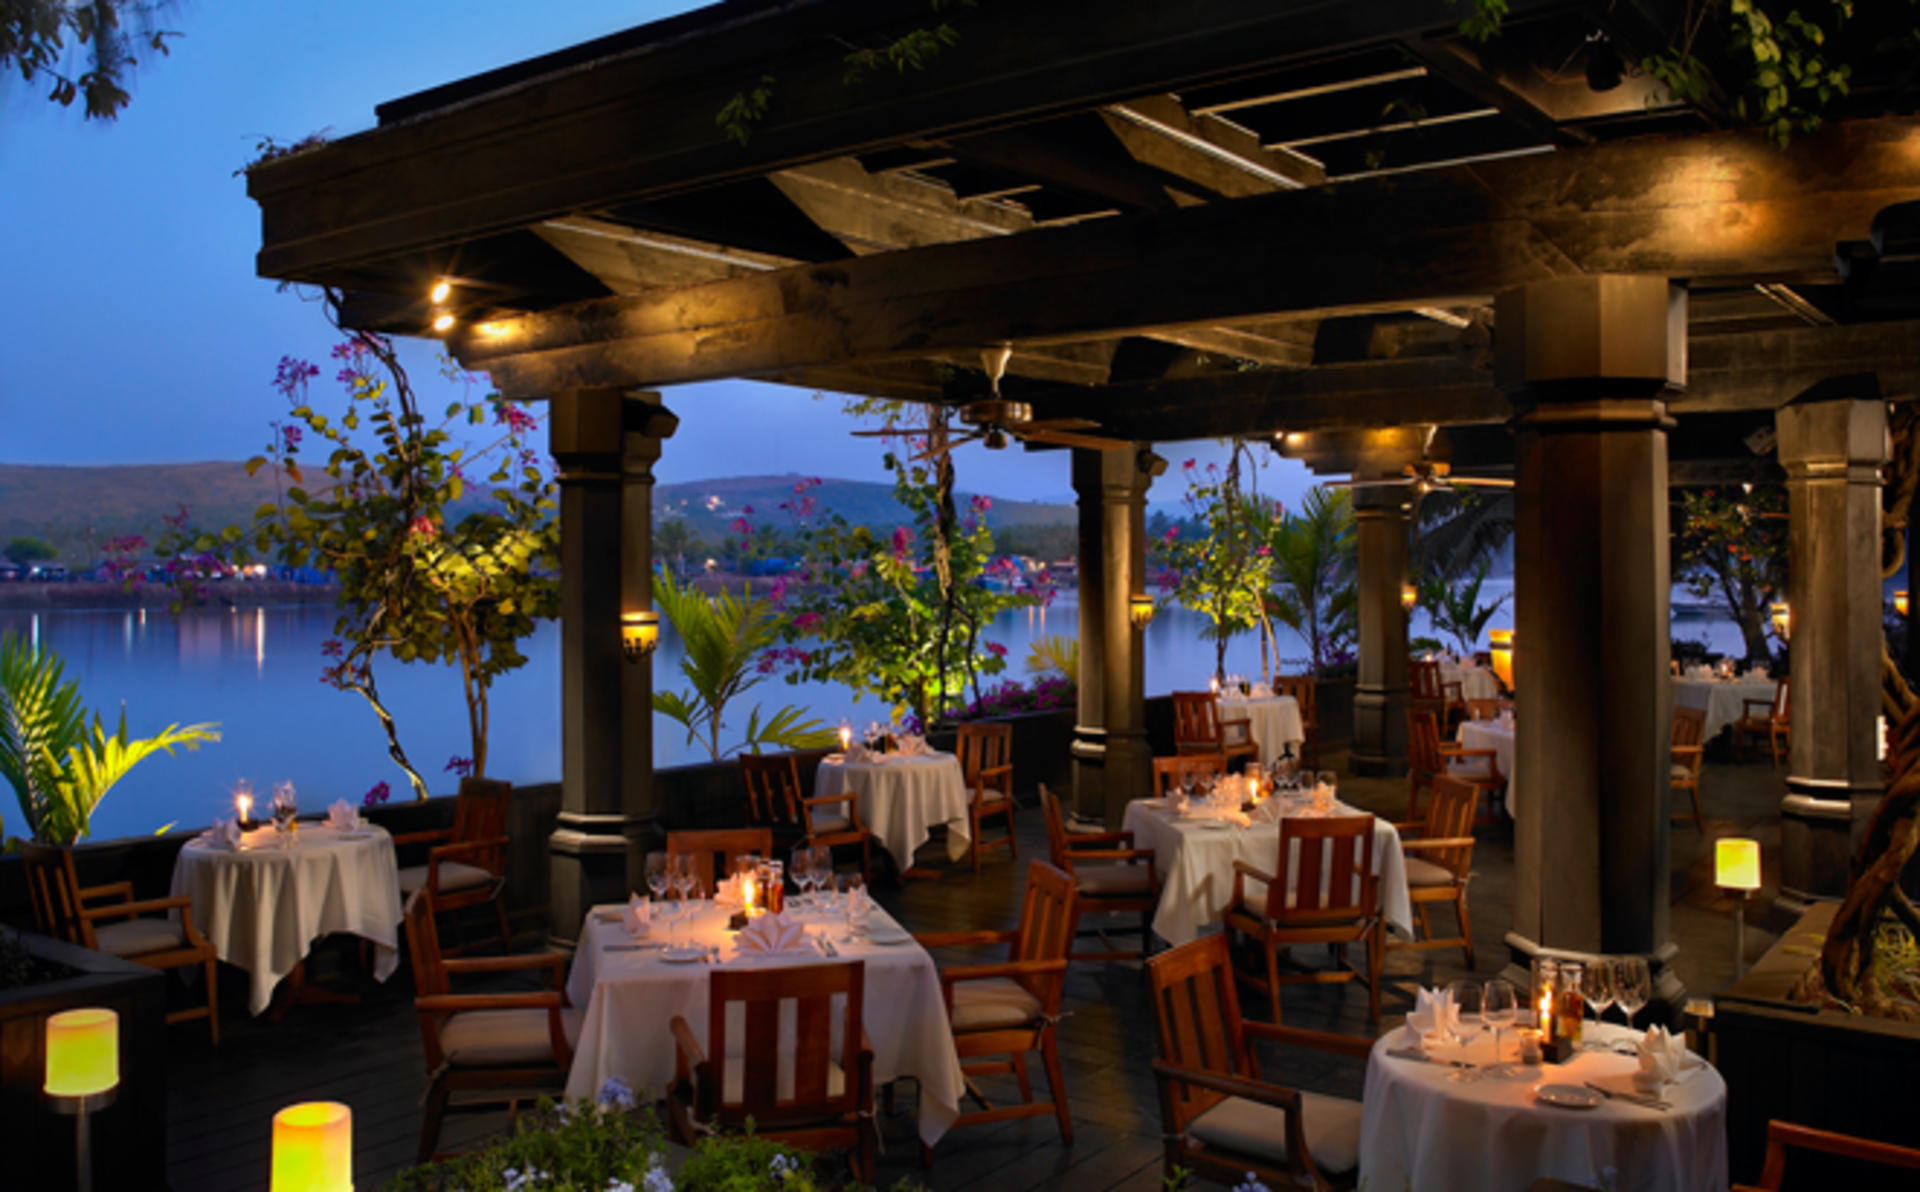 Leela_Goa_3-Course-Meal-Riverside-Restaurant-HD